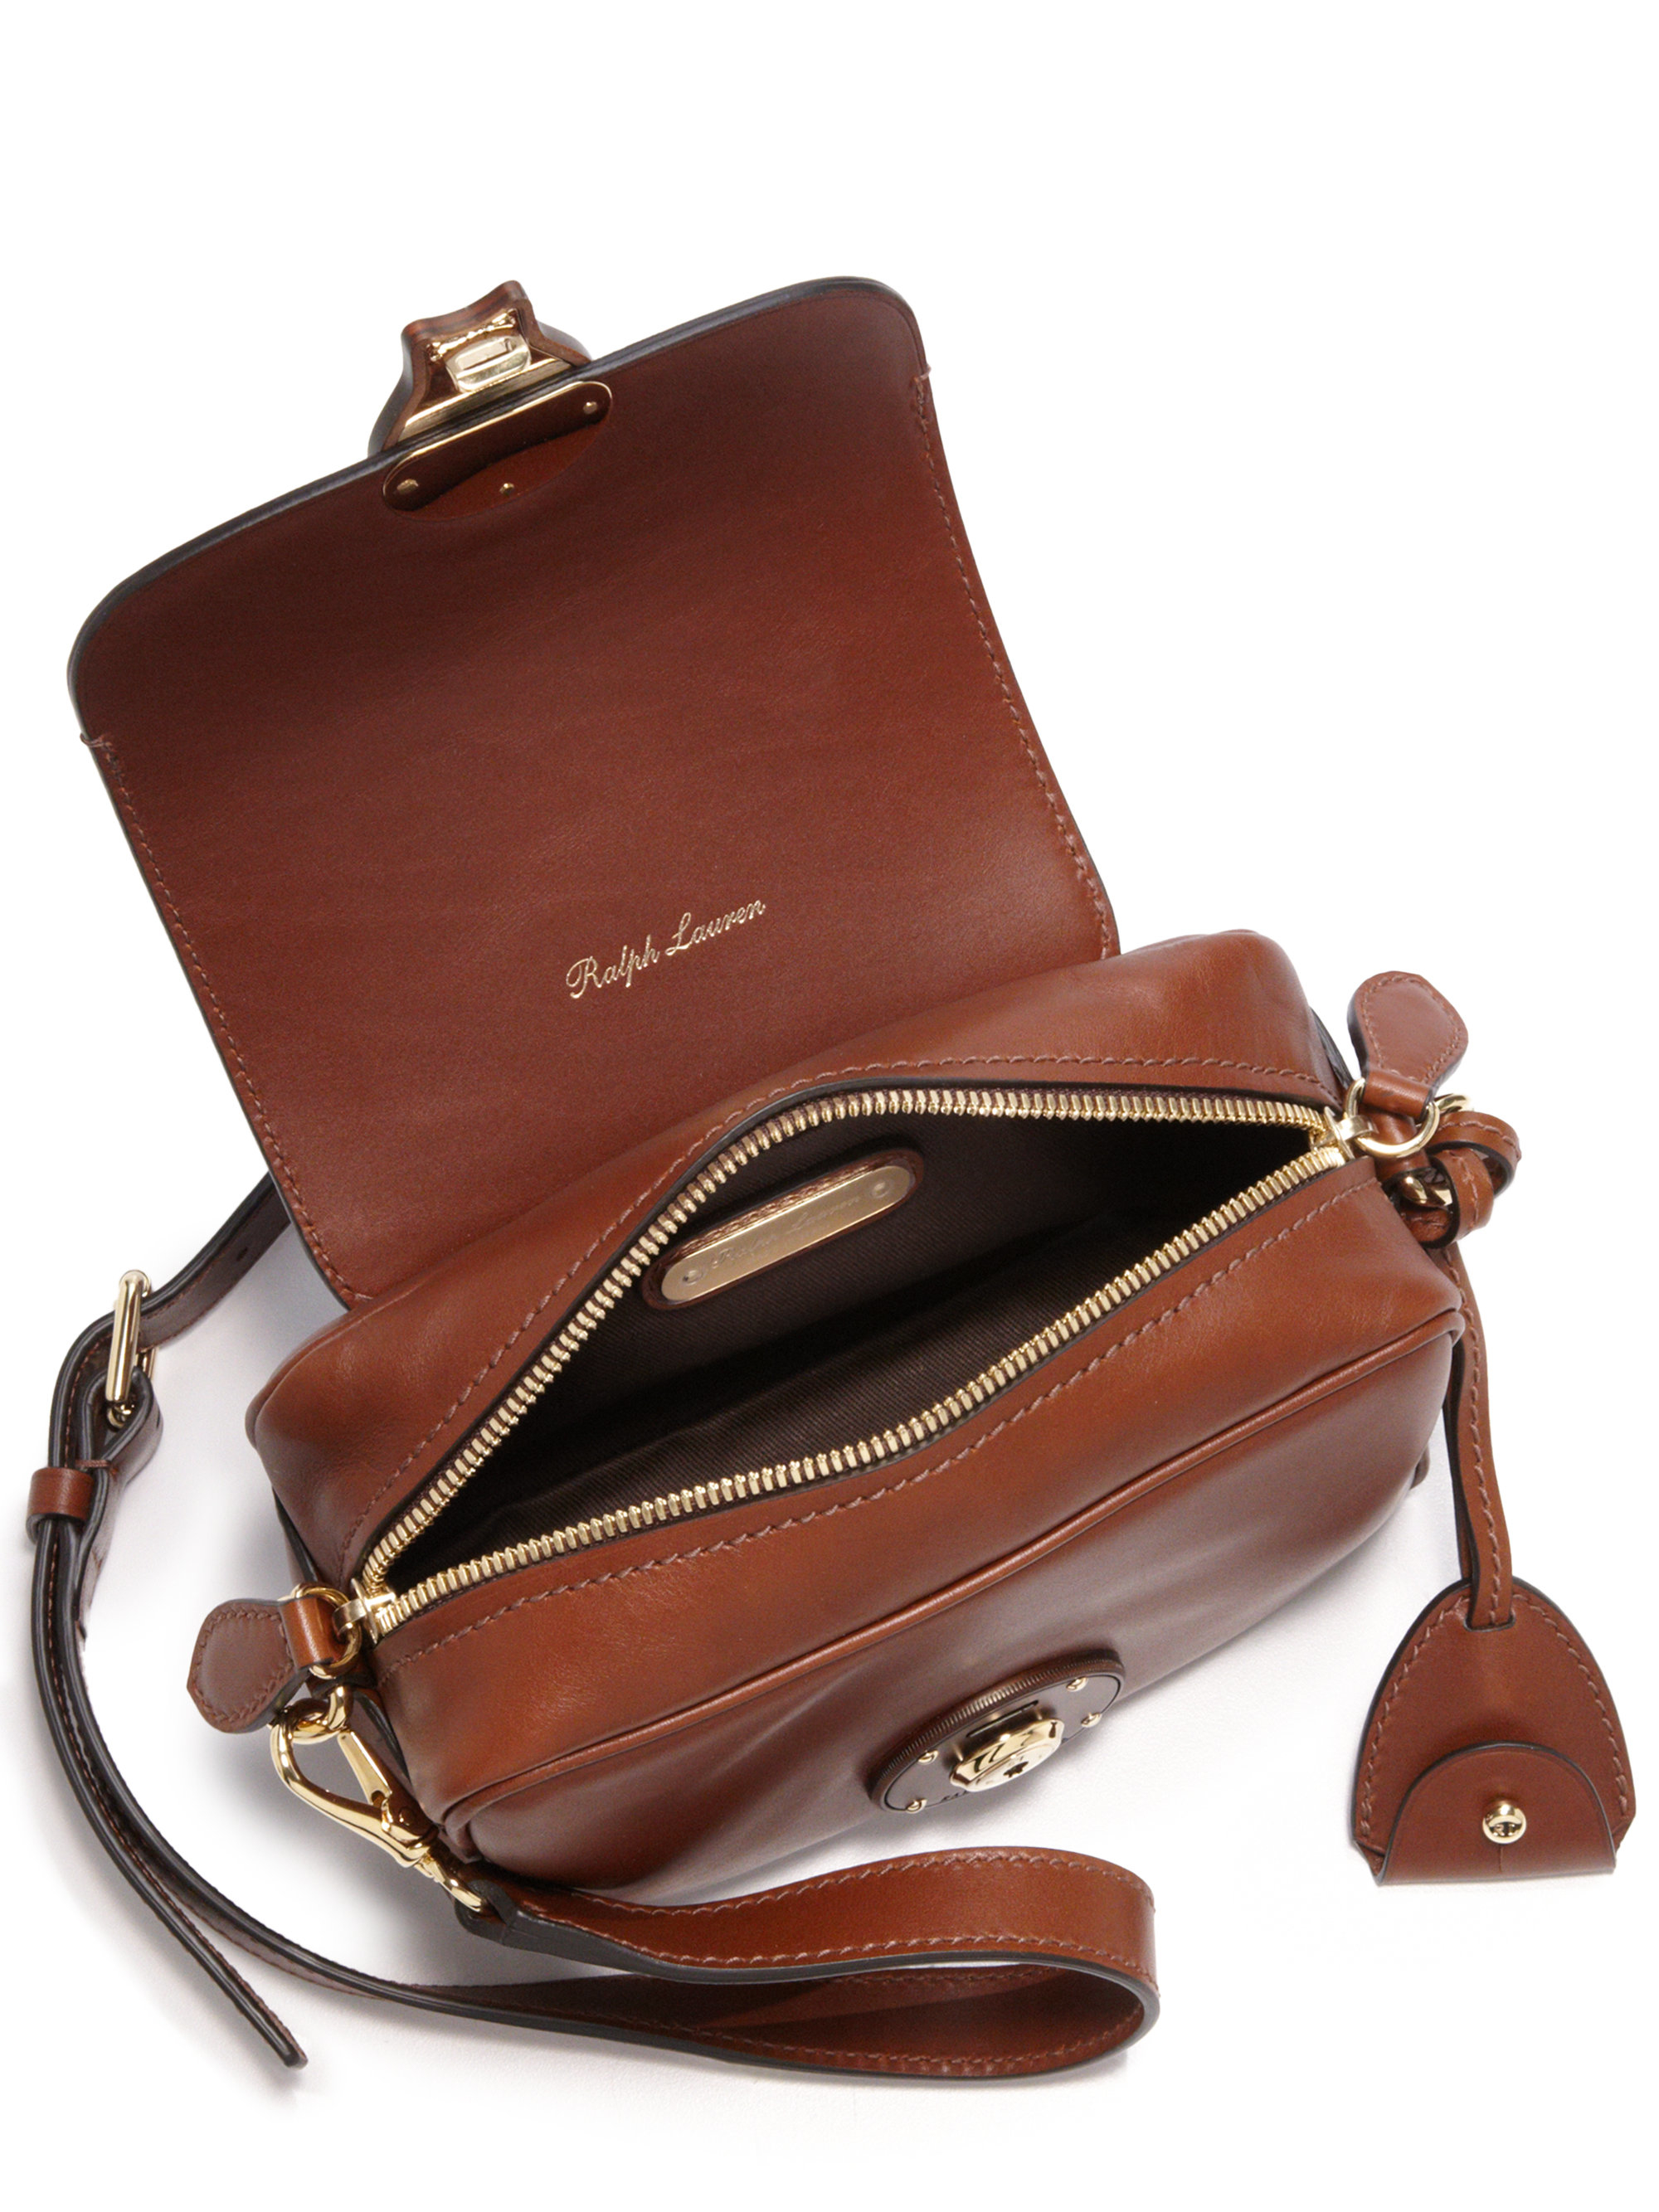 Lyst - Ralph Lauren Ricky Extra-small Leather Zip Crossbody Bag in Brown 4e41be6d72ec3